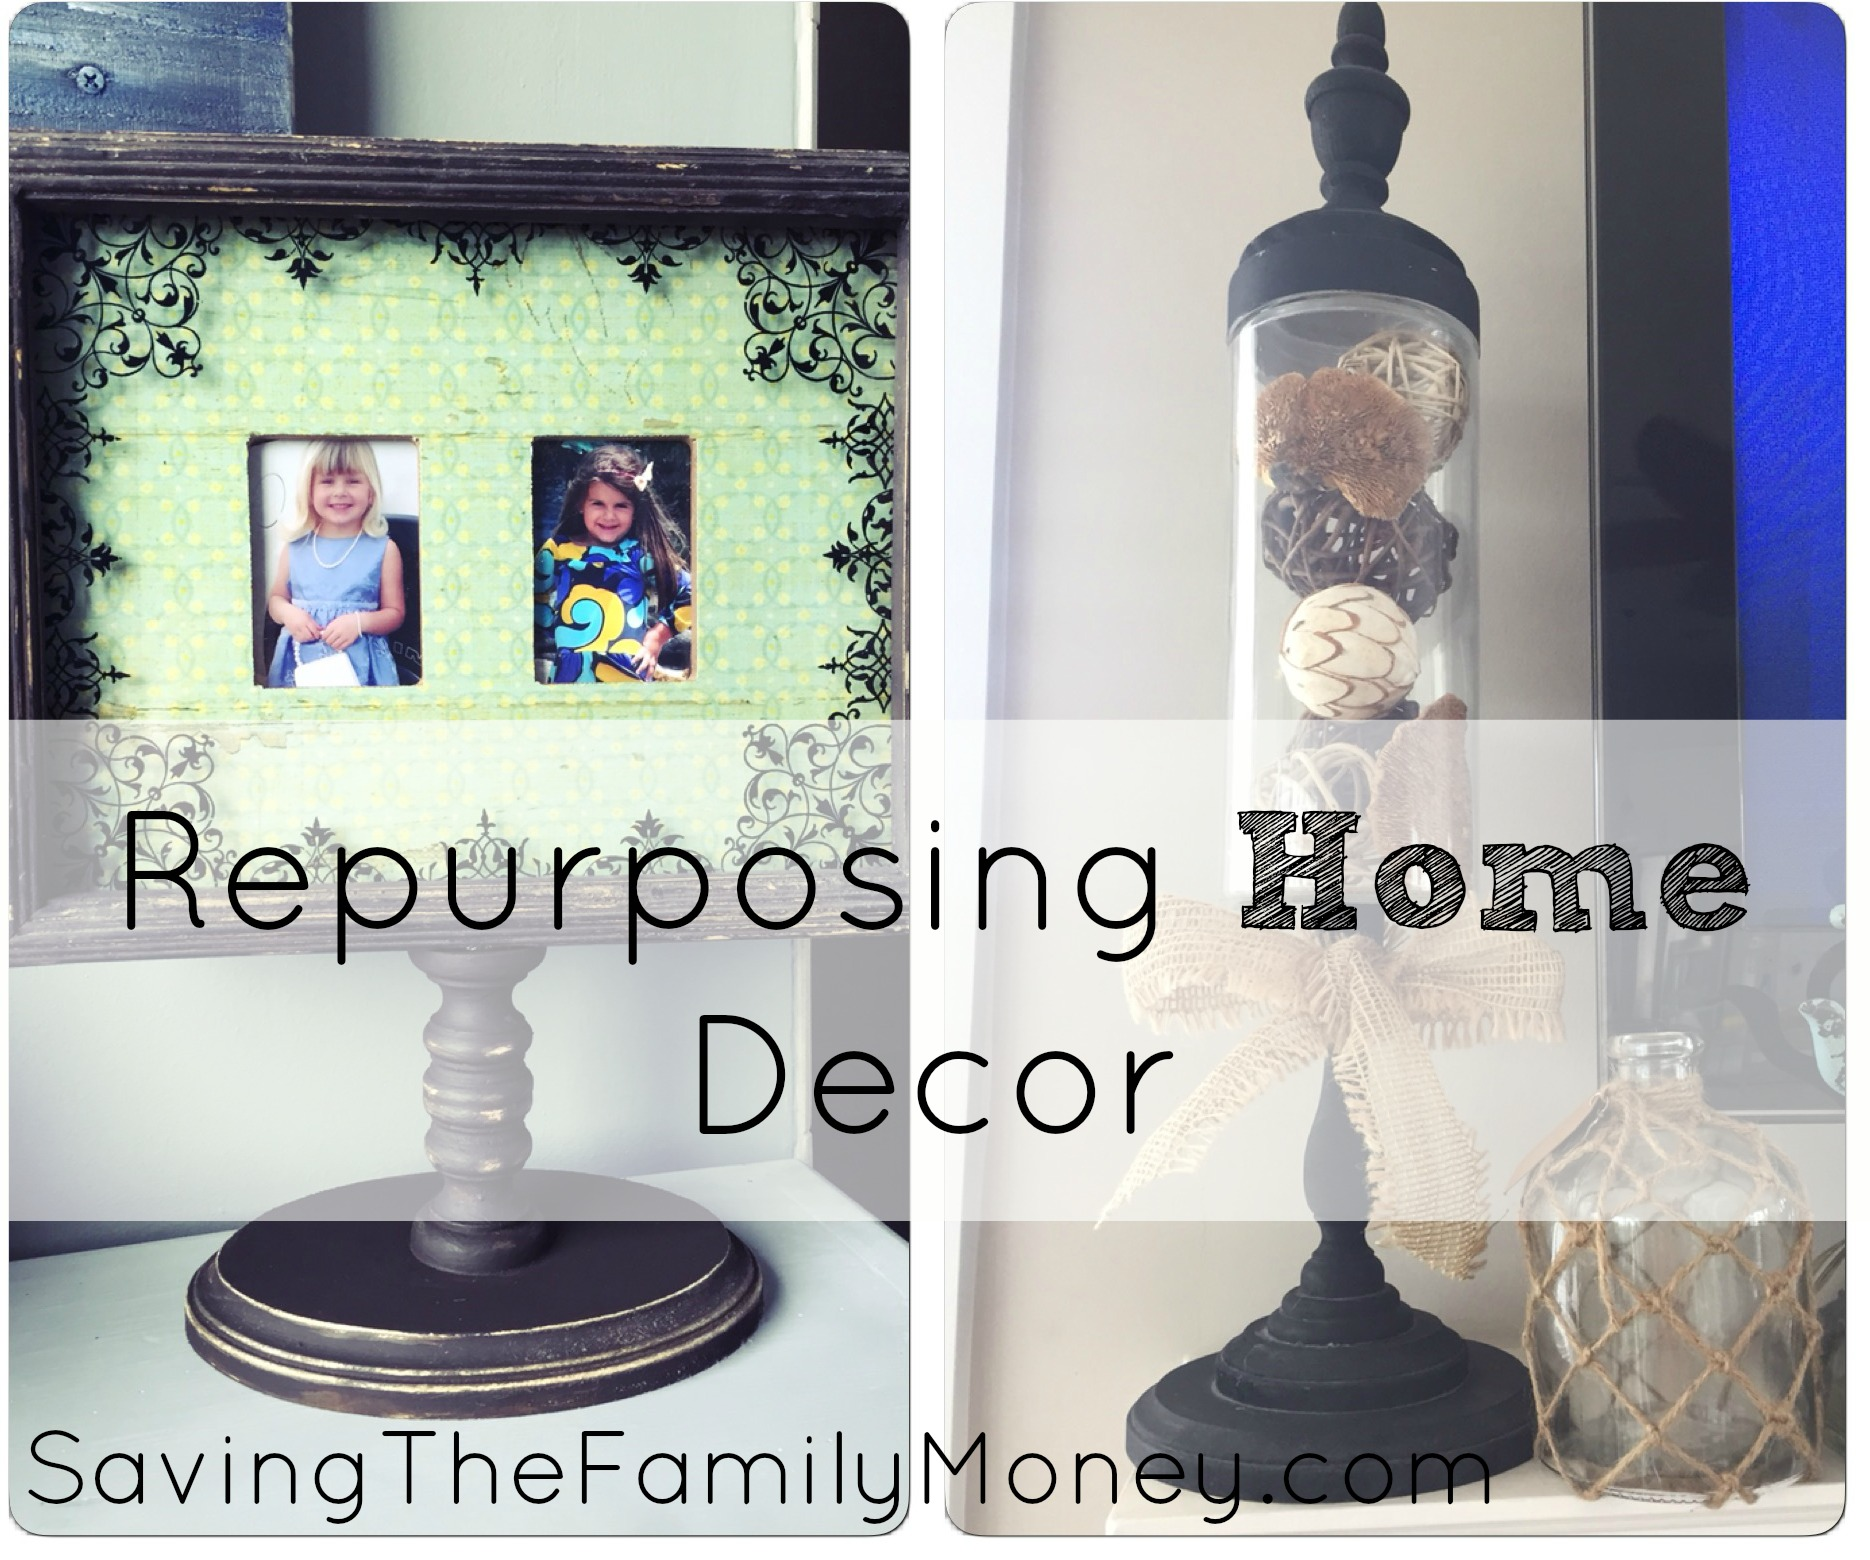 Repurposed Home Decor: Repurposing Home Decor Into Focal Points